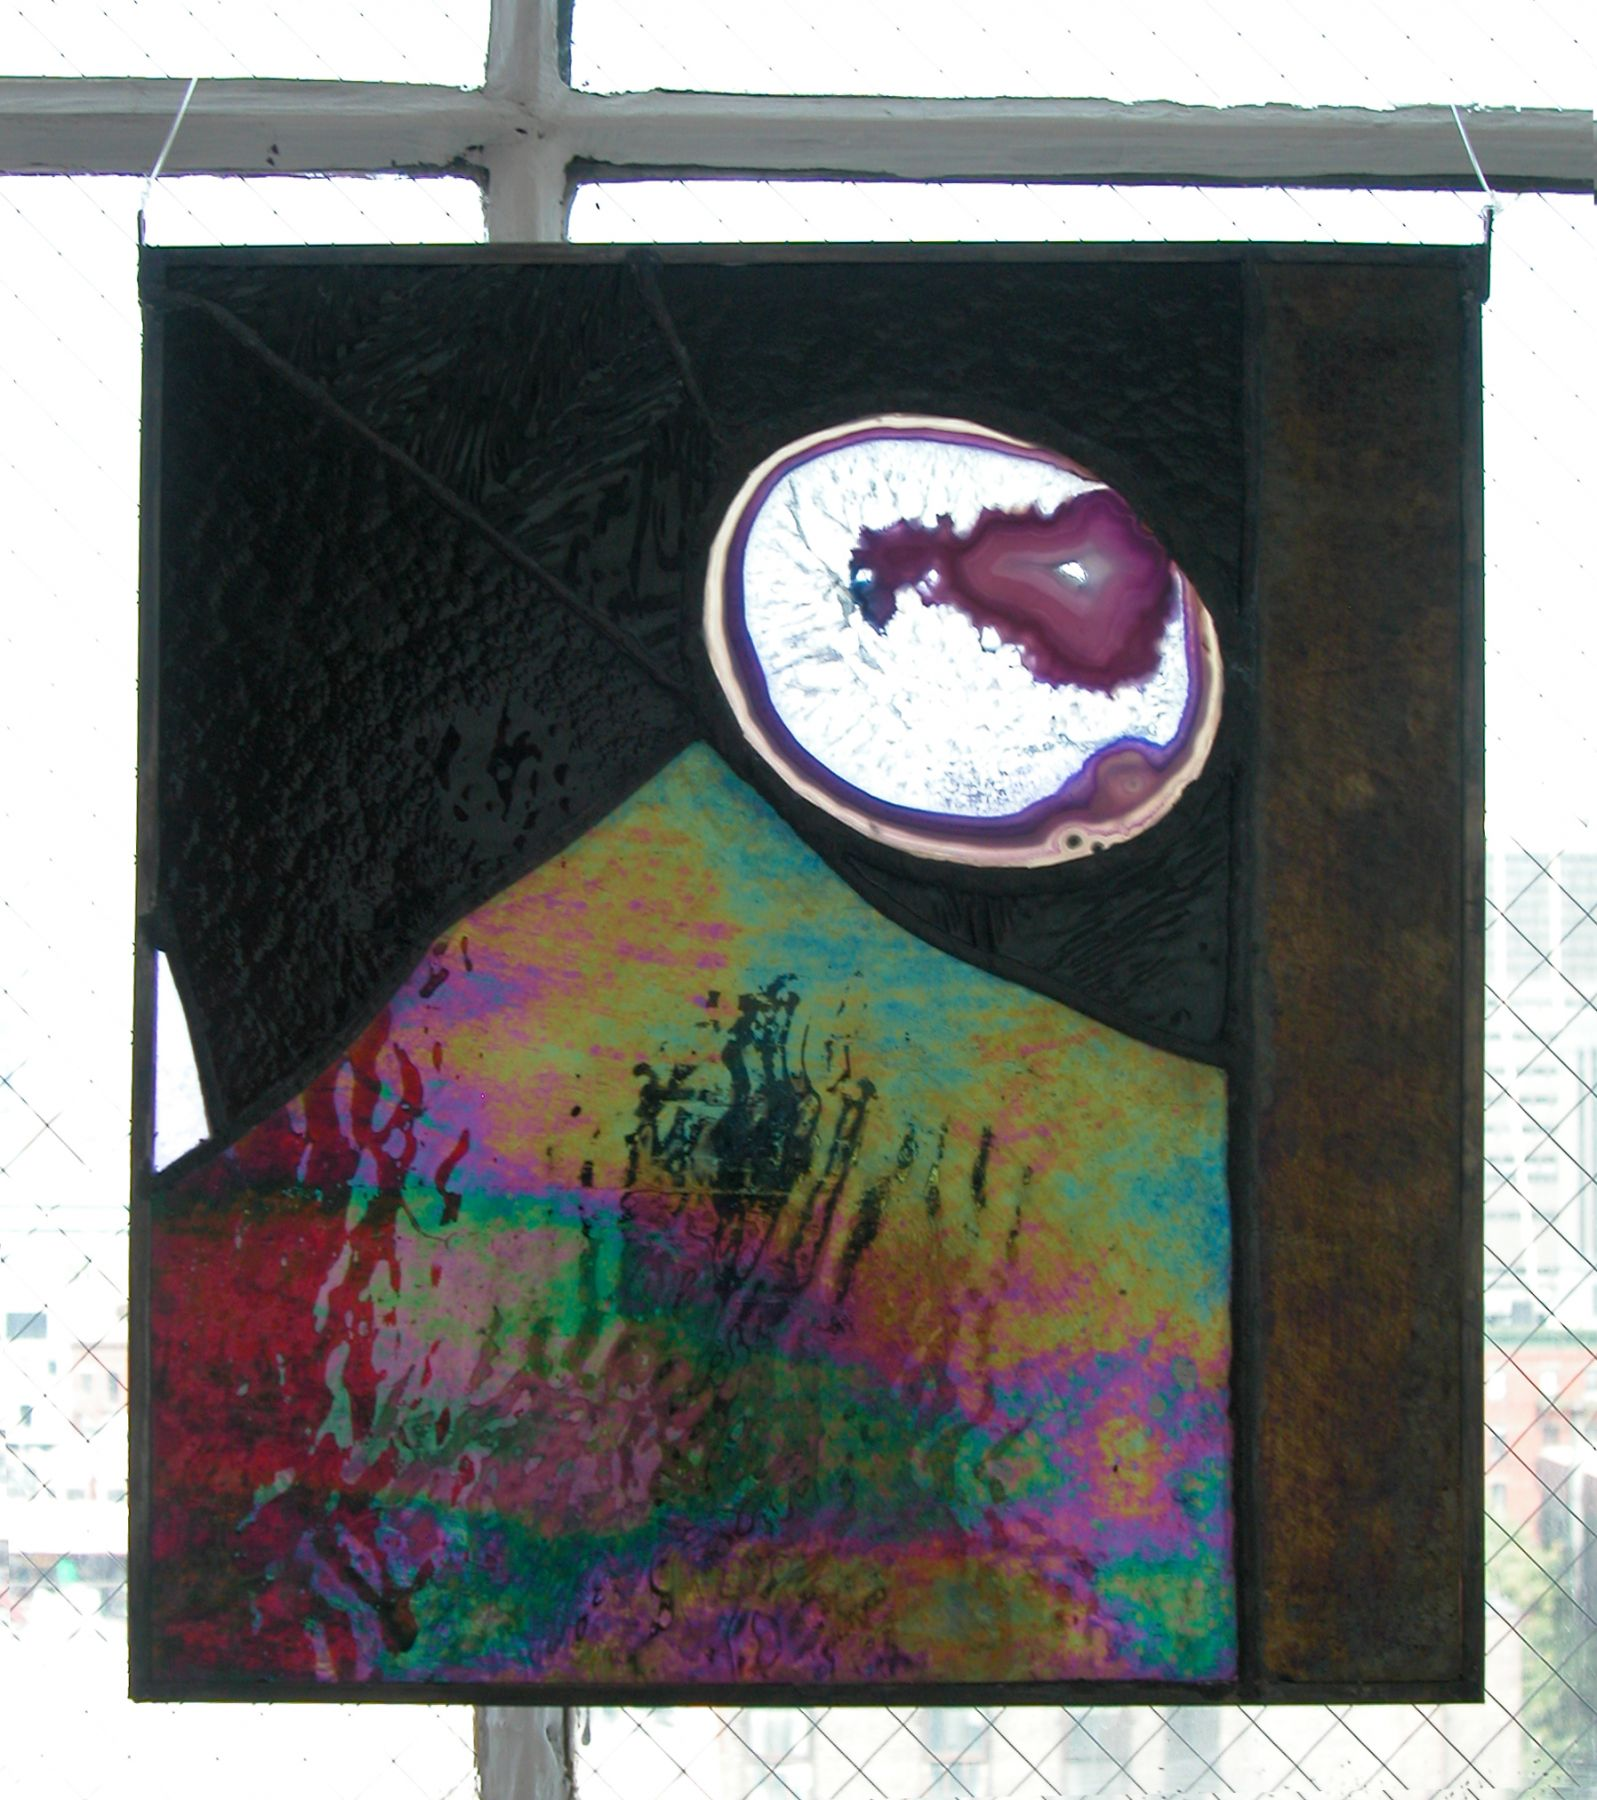 Jim Drain, Untitled (black stained glass), 2007, Stained glass, 16 x 14 inches